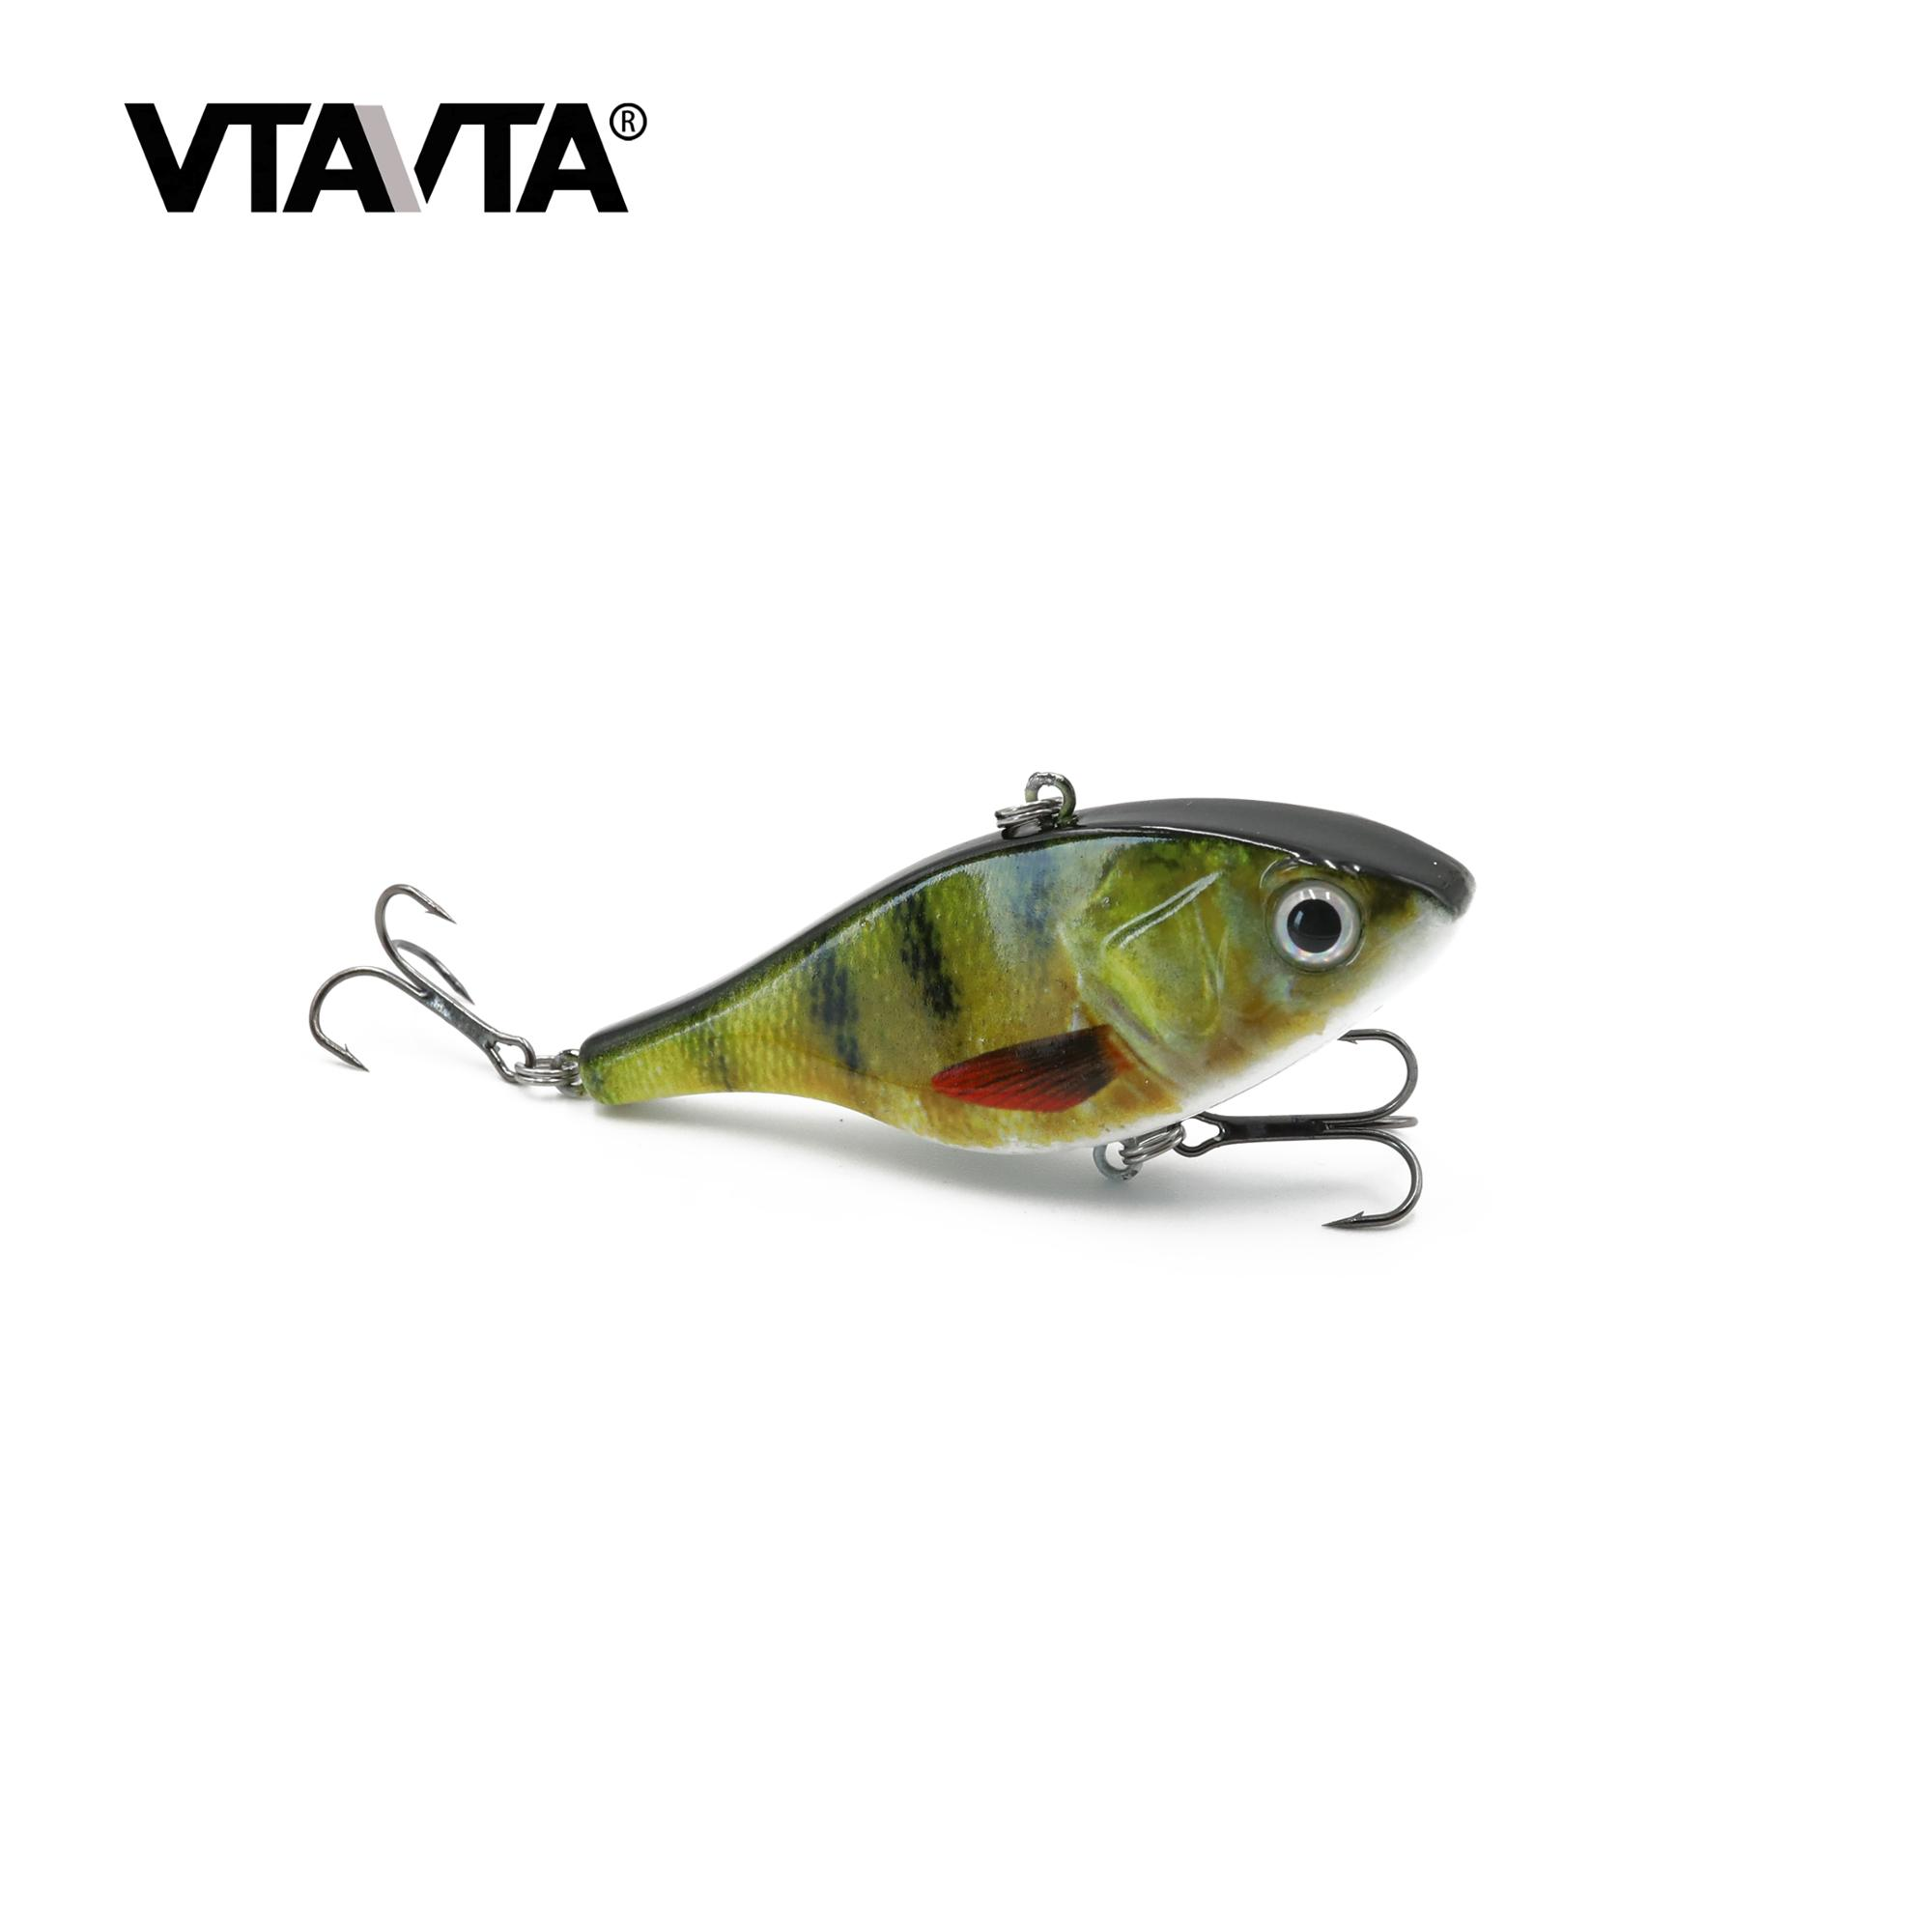 VTAVTA 7.7cm,21g best selling minnow slow sinking fishing lure to catch big fish